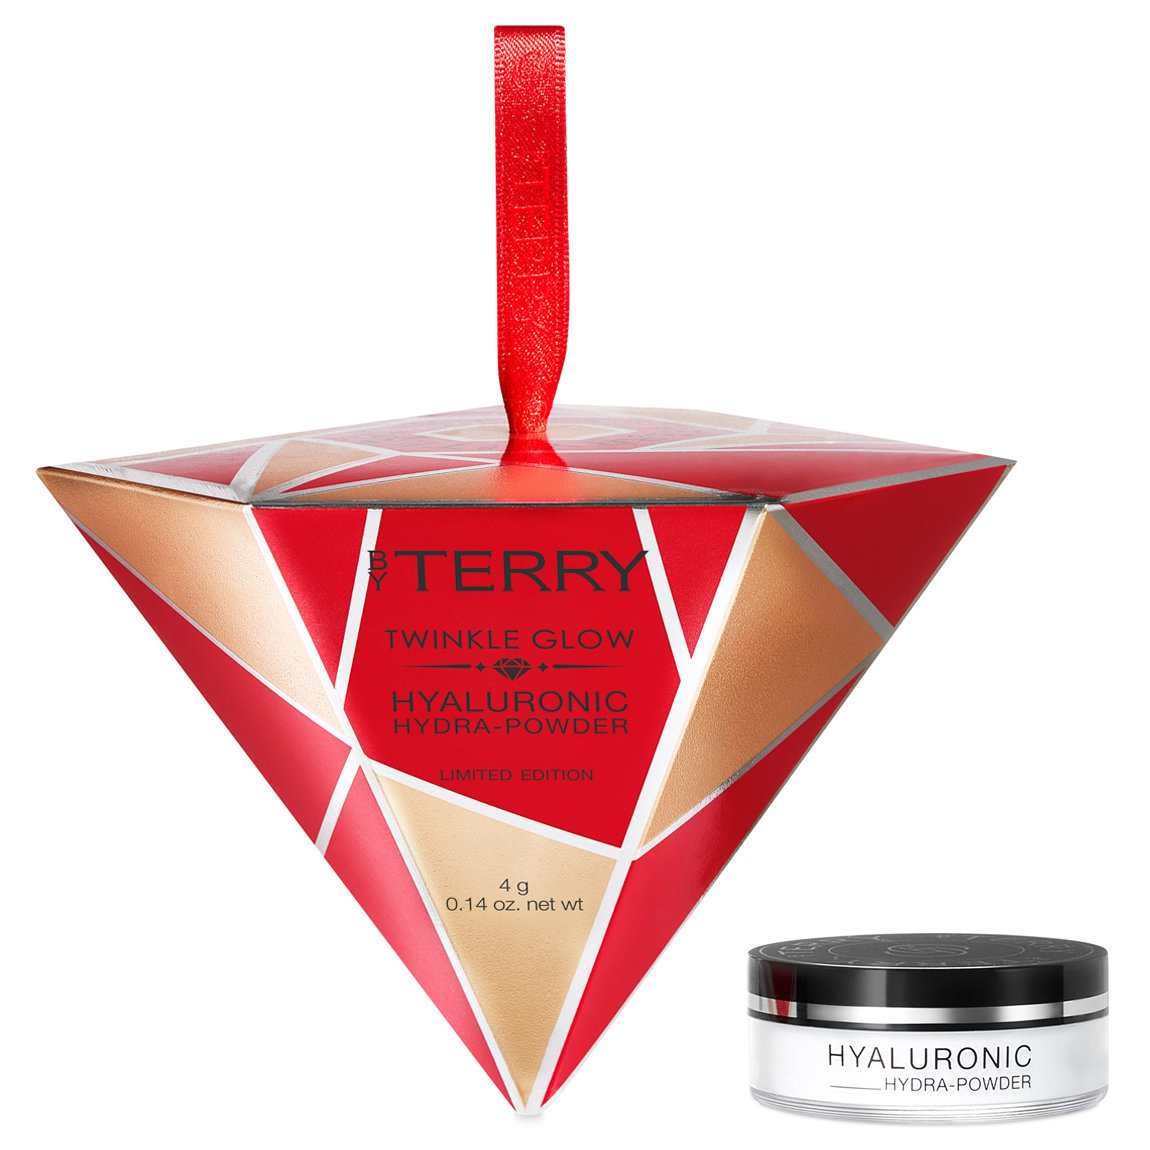 BY TERRY Twinkle Glow - Hyaluronic Hydra-Powder alternative view 1 - product swatch.